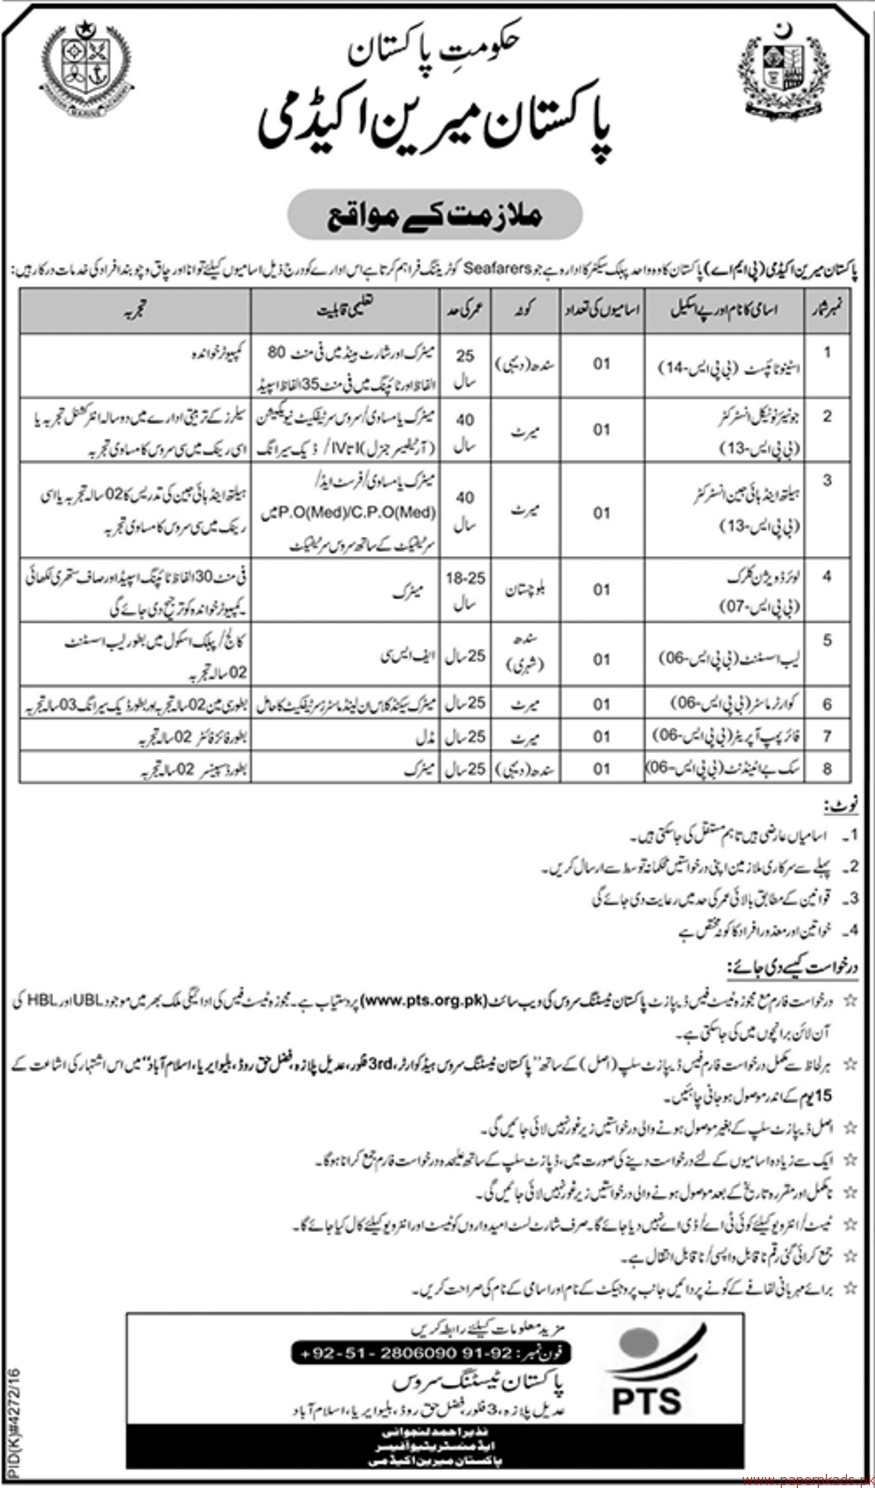 Government of Pakistan - Pakistan Marine Academy Jobs